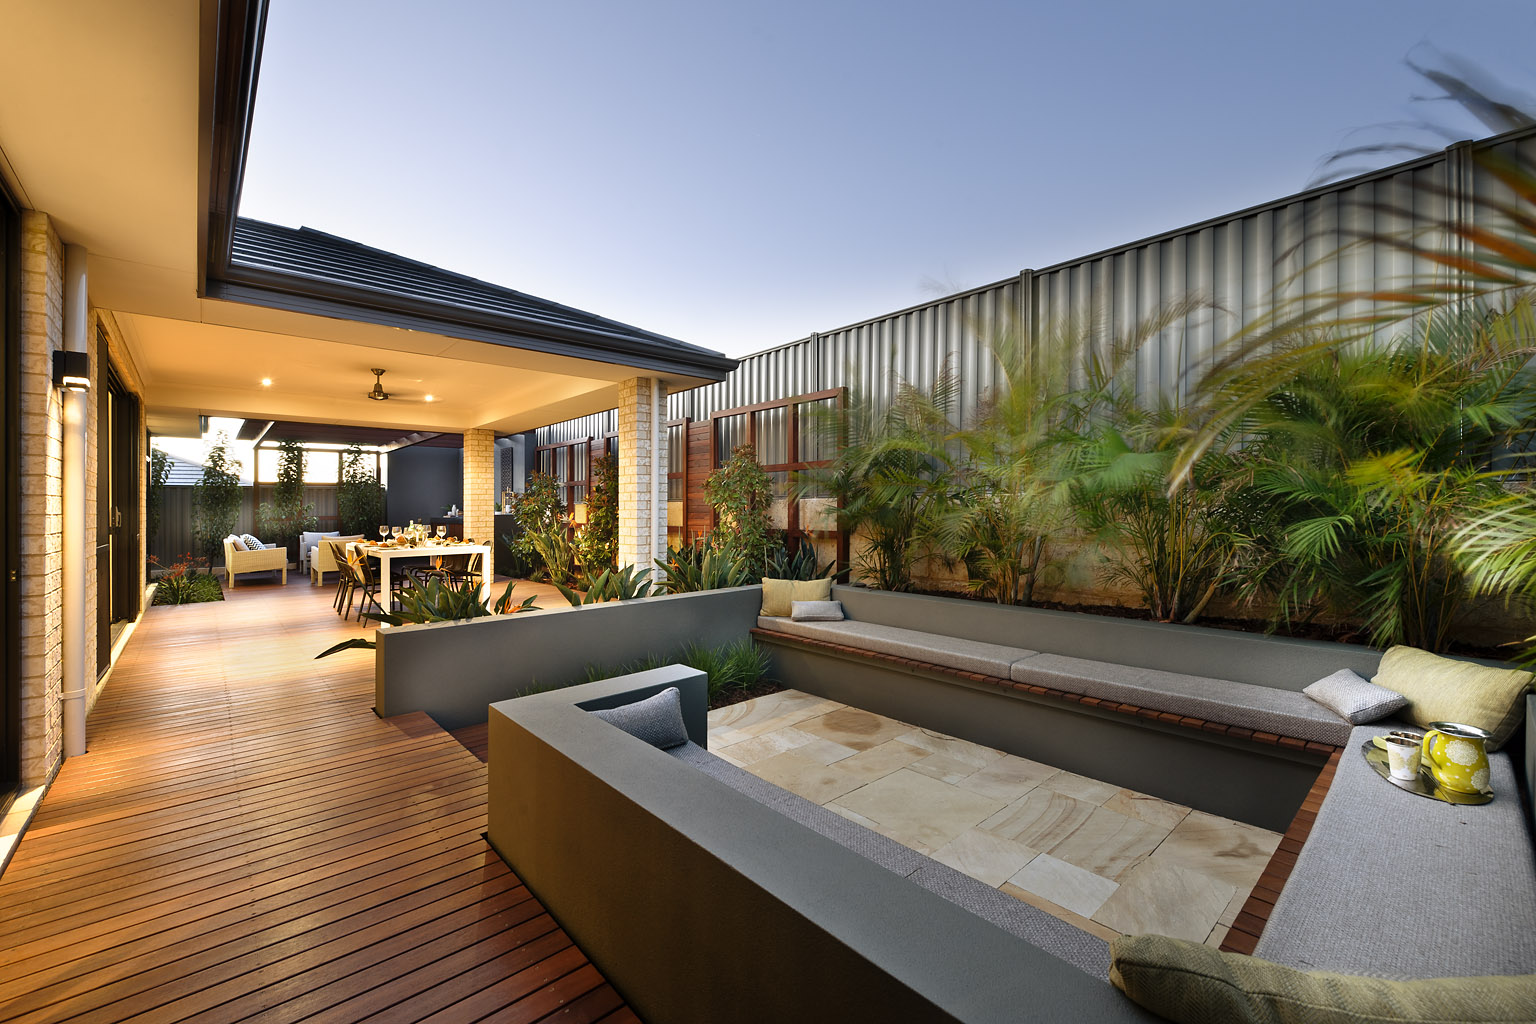 exterior space designed for a Centered Conversation Social Pit -Sunken Sitting Areas to Fit Your Modern Mansion